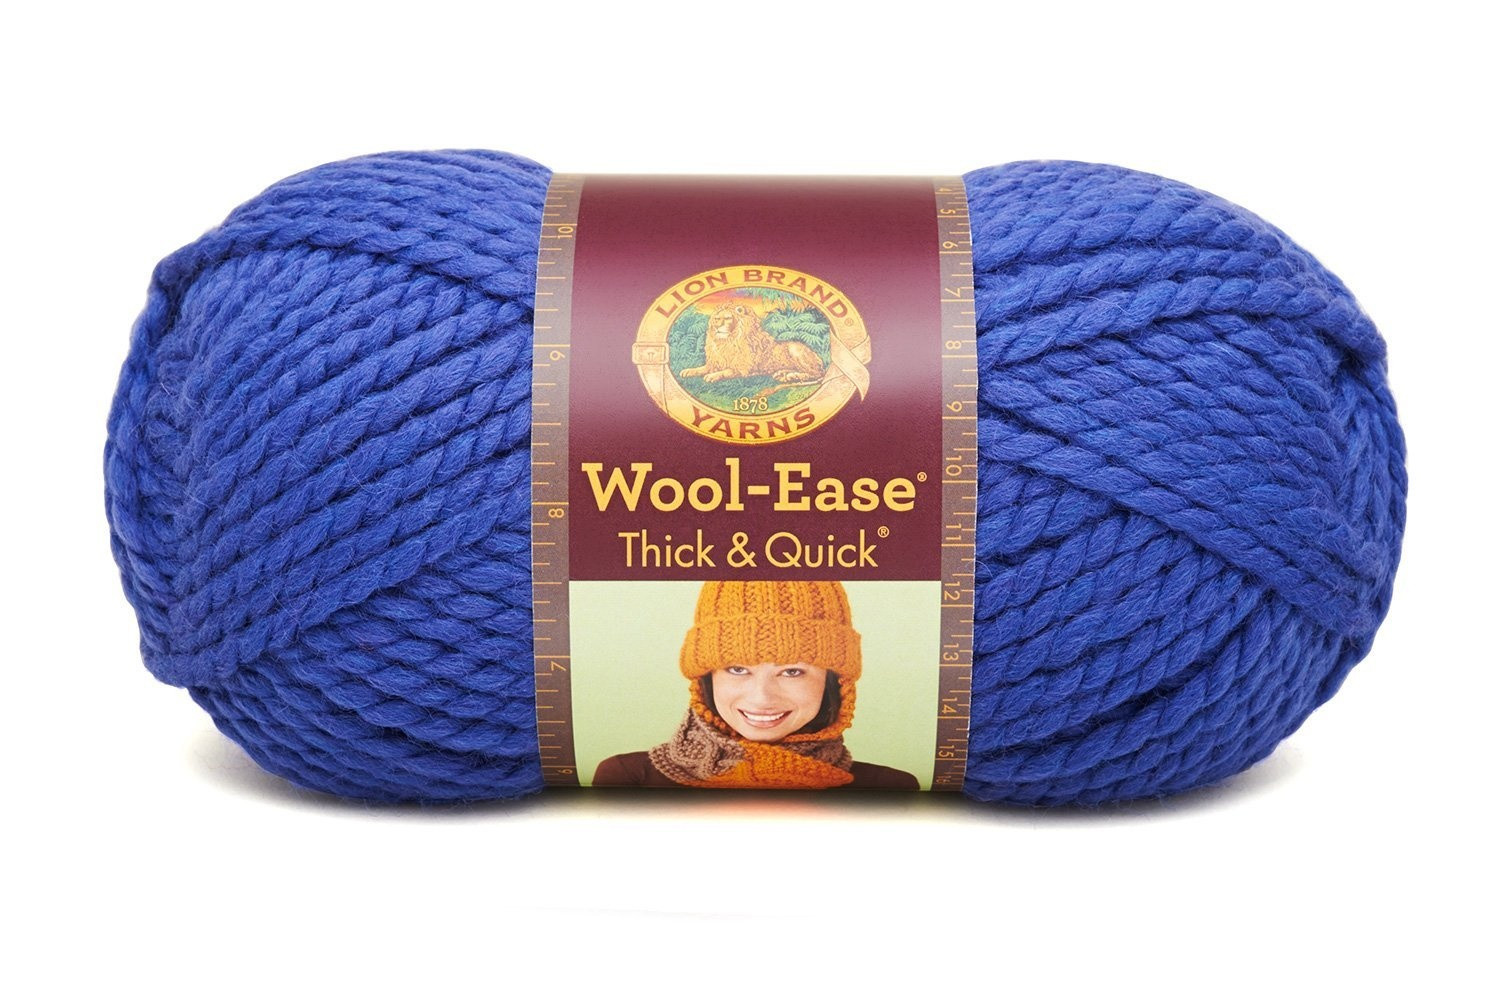 Lion Brand Wool Ease Thick and Quick New Lion Brand Yarn 640 136f Wool Ease Thick and Quick Yarn Of Incredible 48 Images Lion Brand Wool Ease Thick and Quick